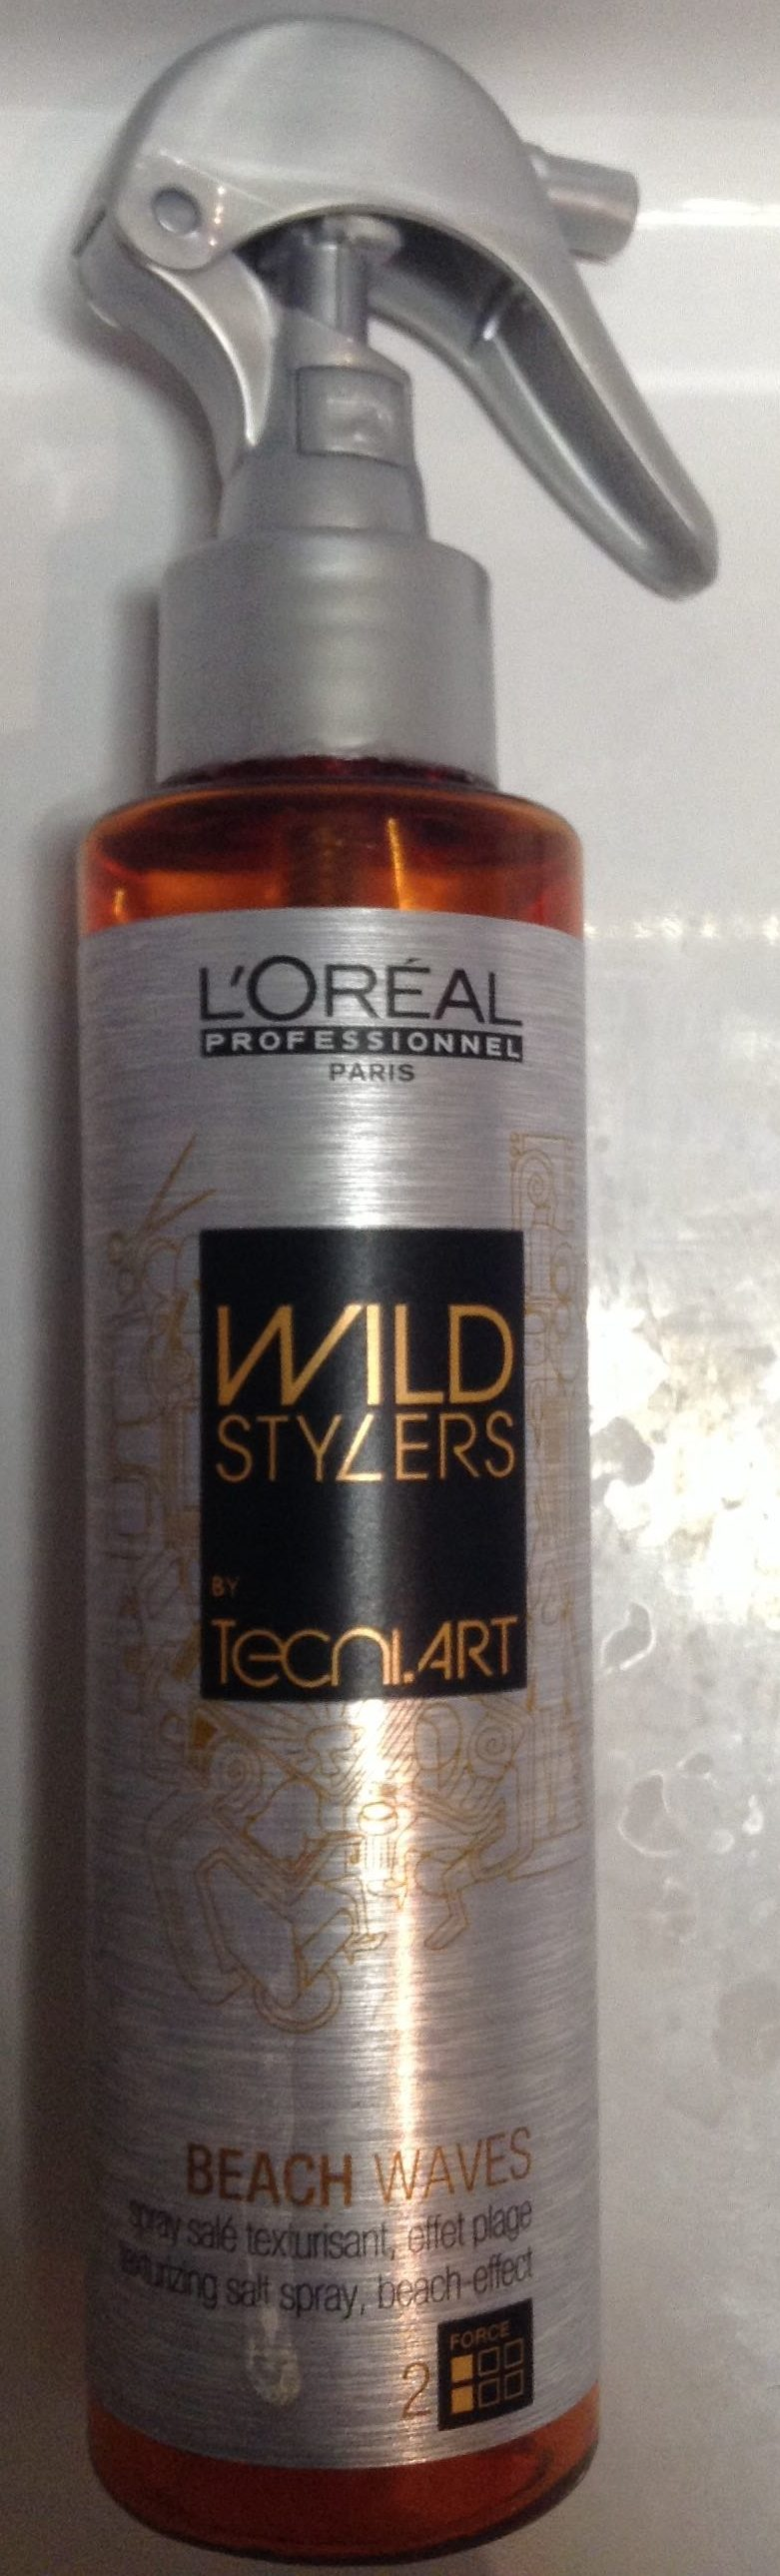 Wild Stylers by Techni Art Beach Waves (force 2) - Product - fr